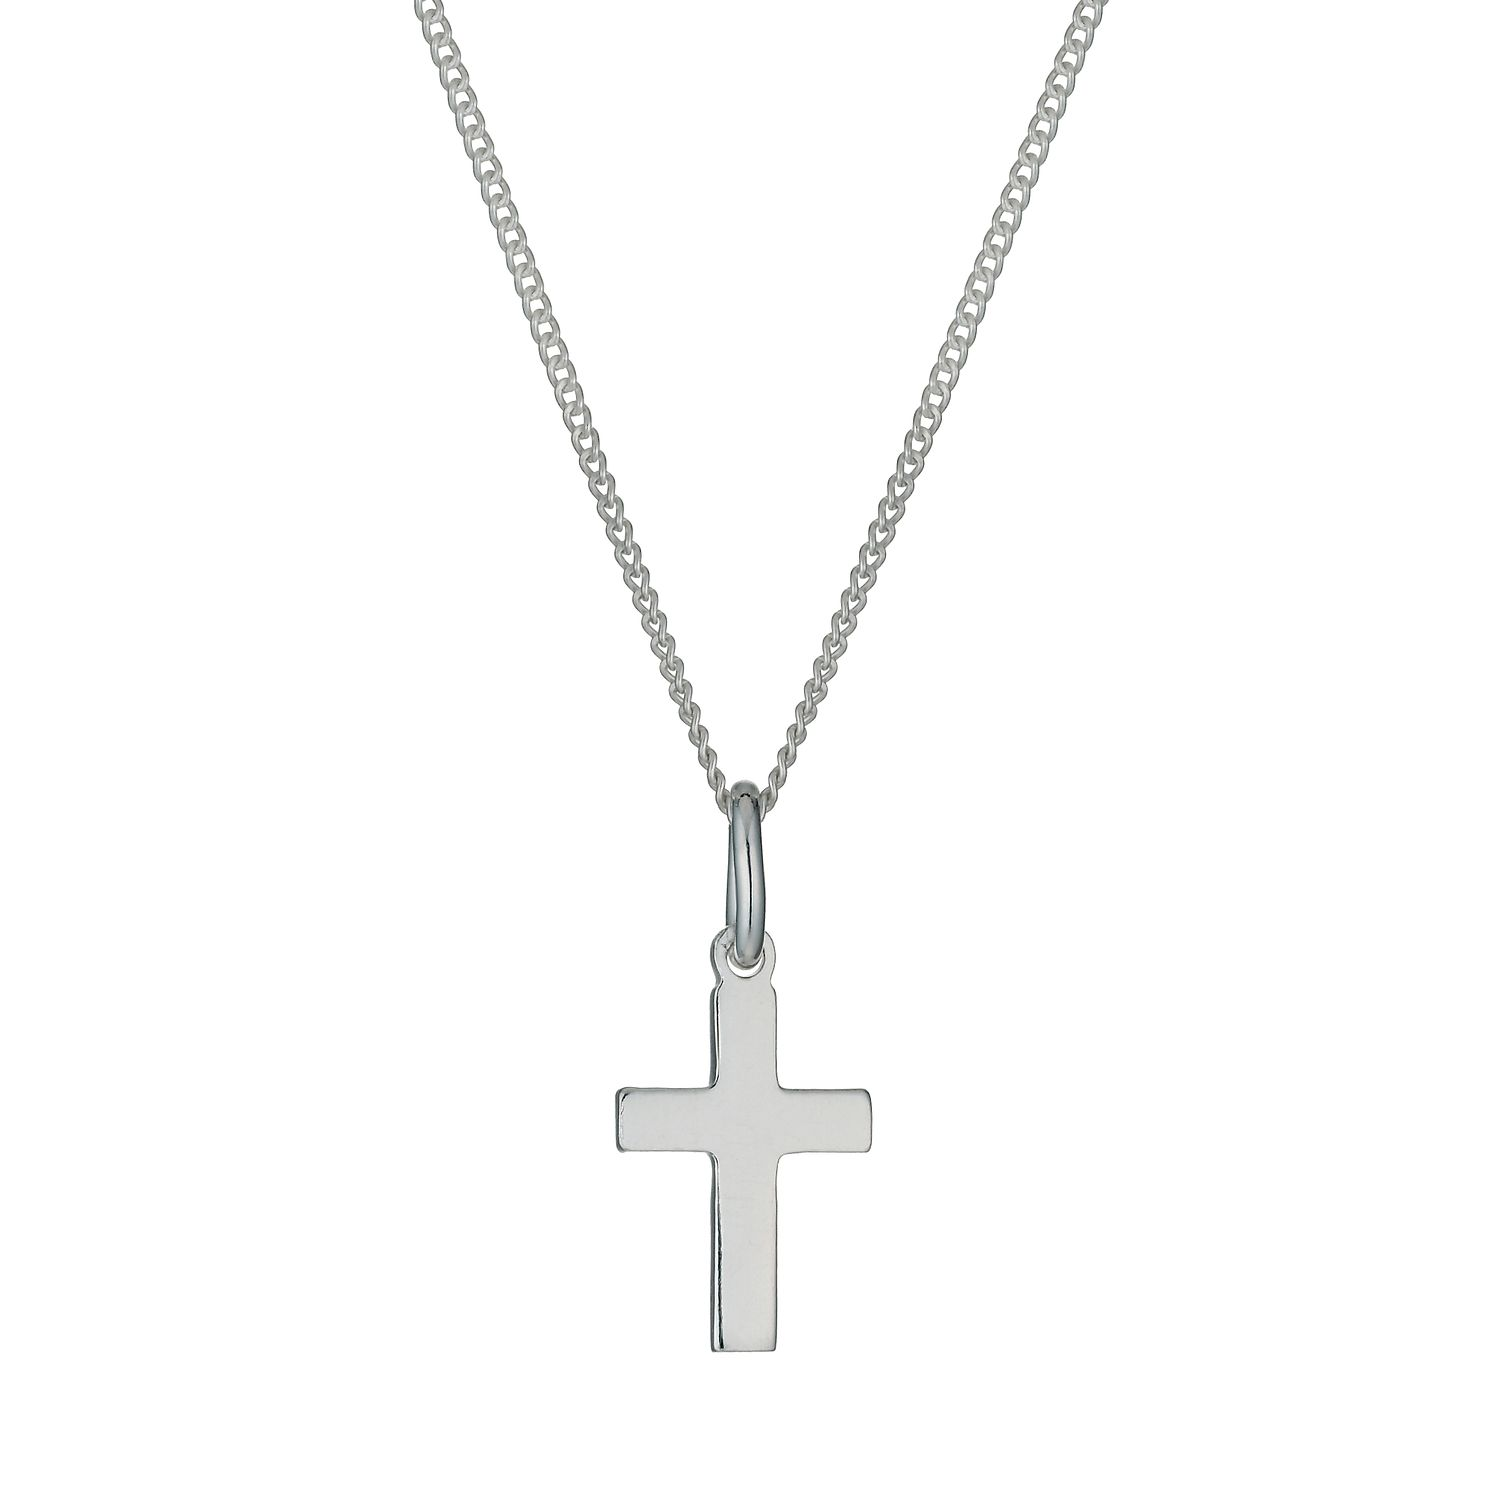 Sterling Silver Mini Cross Pendant Necklace - Product number 9952357